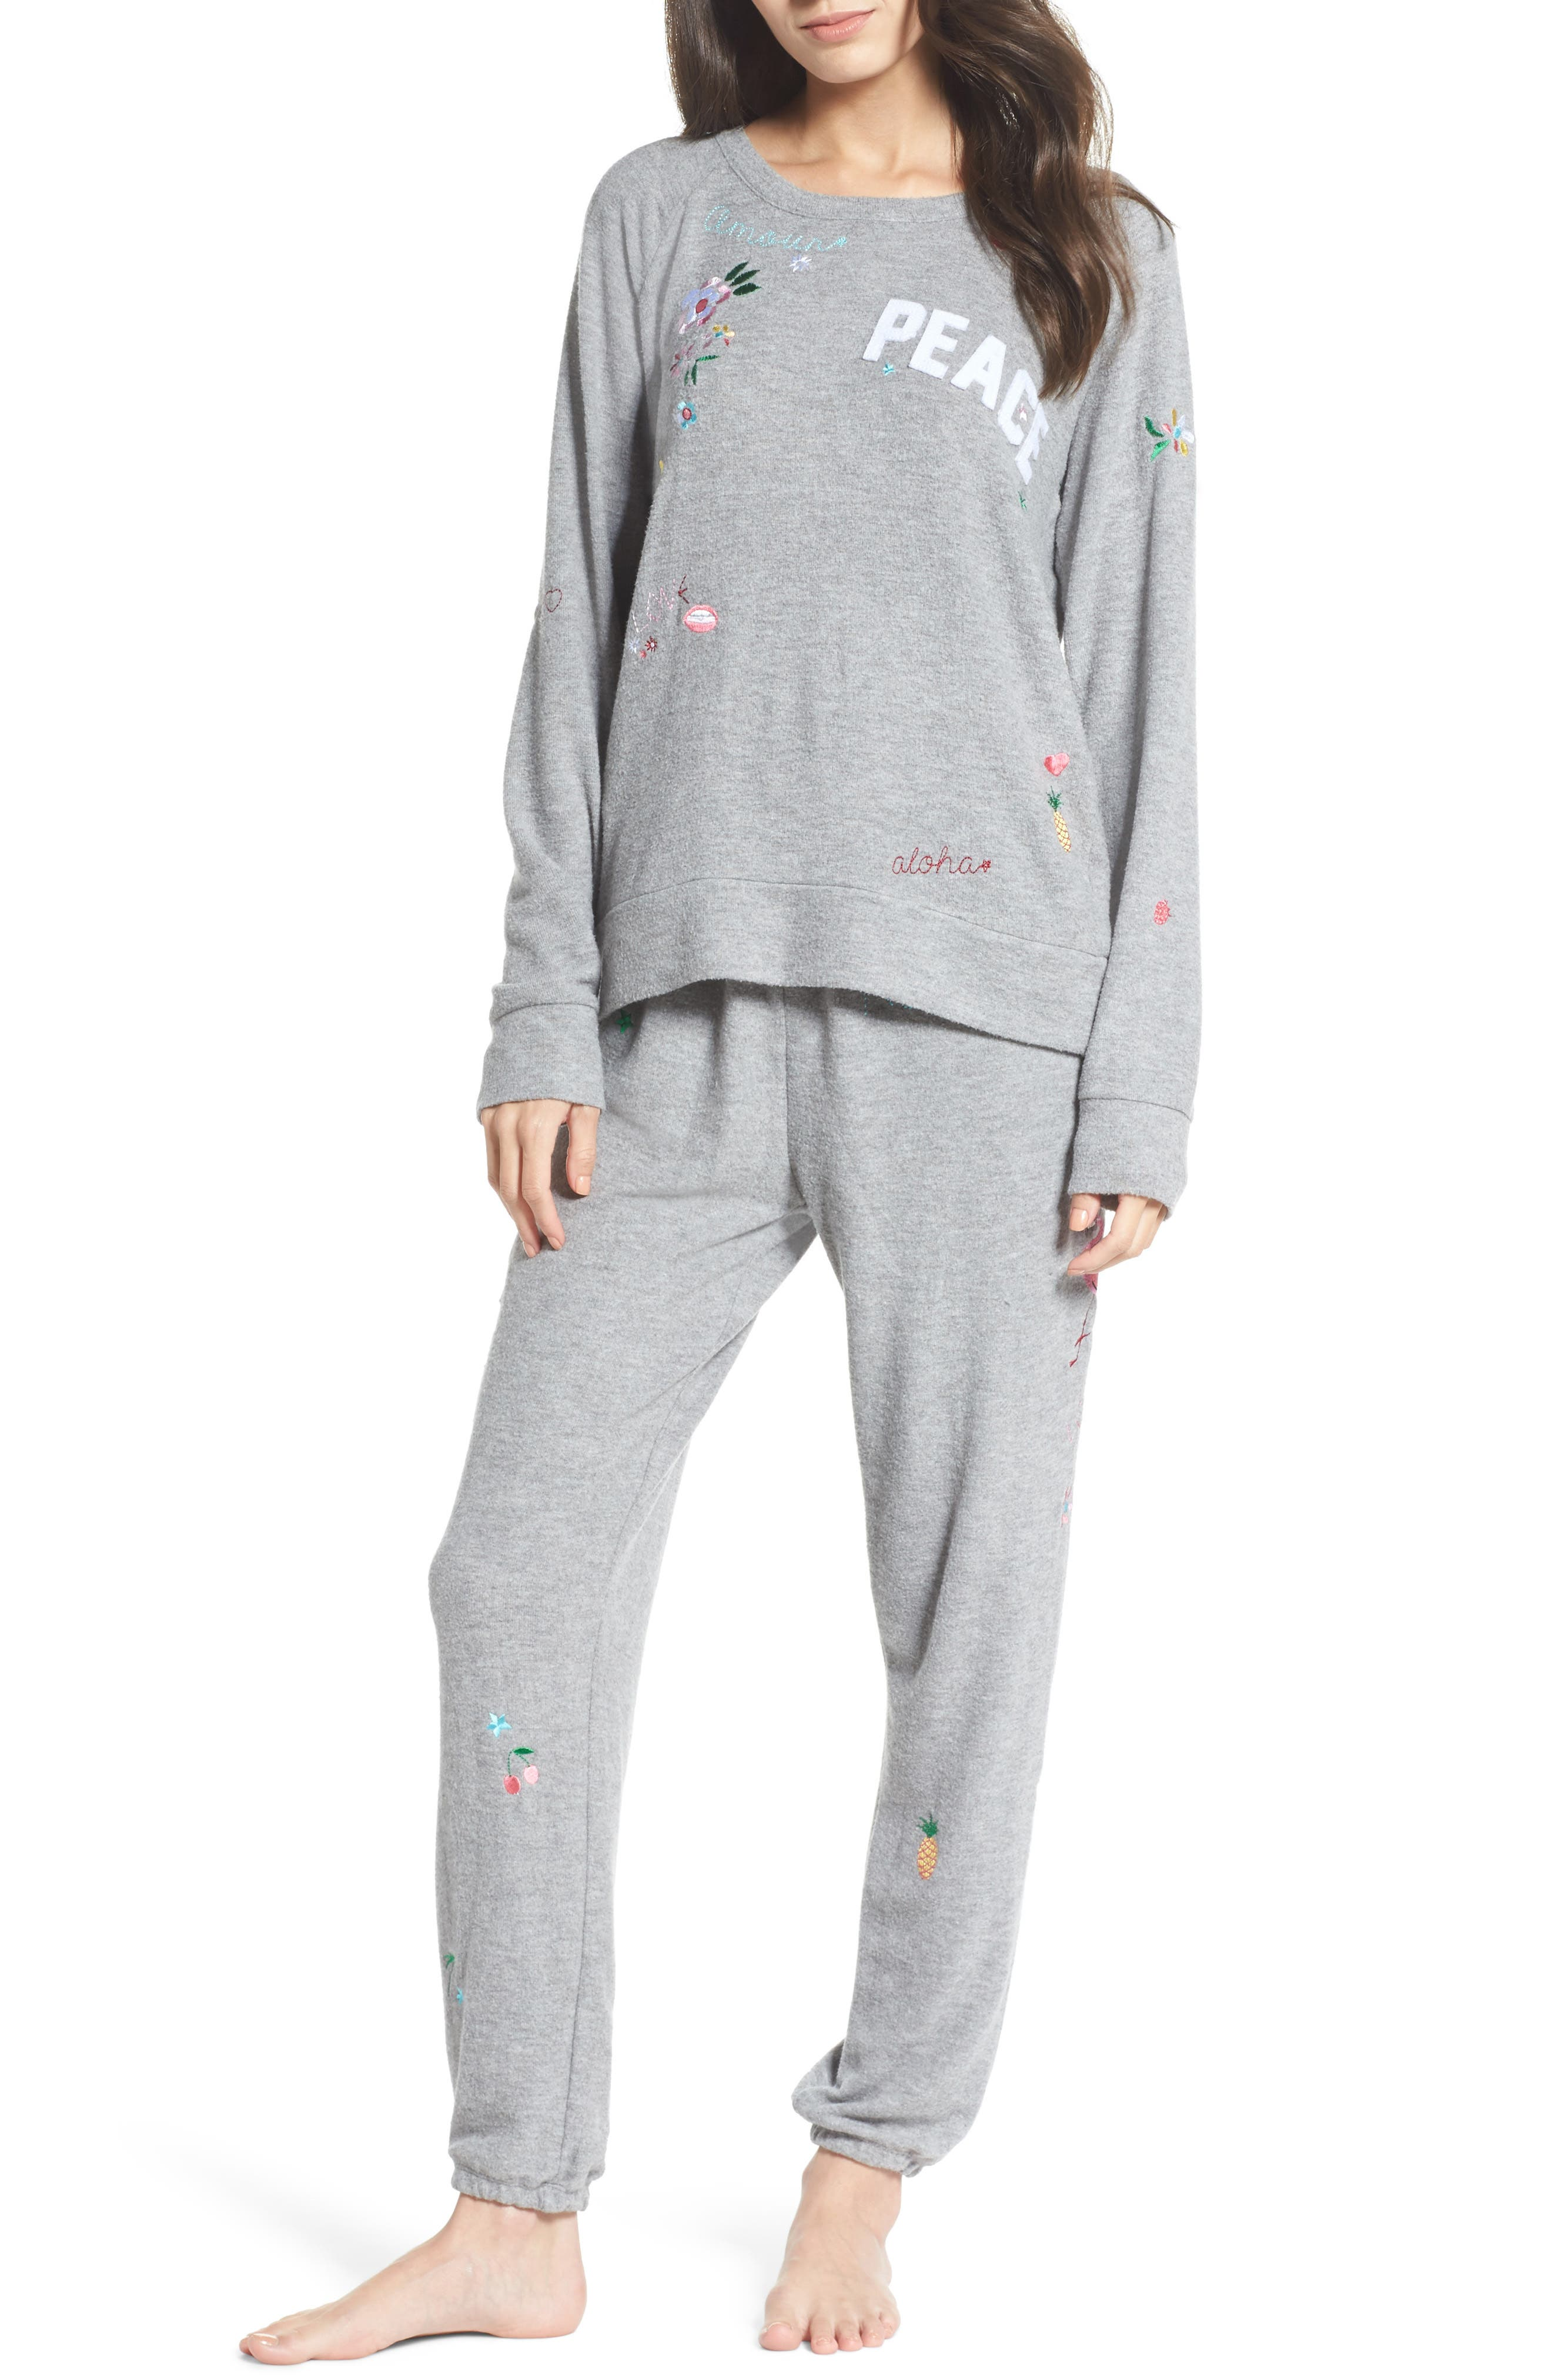 Patched Up Lounge Sweatpants,                             Alternate thumbnail 5, color,                             Heather Grey